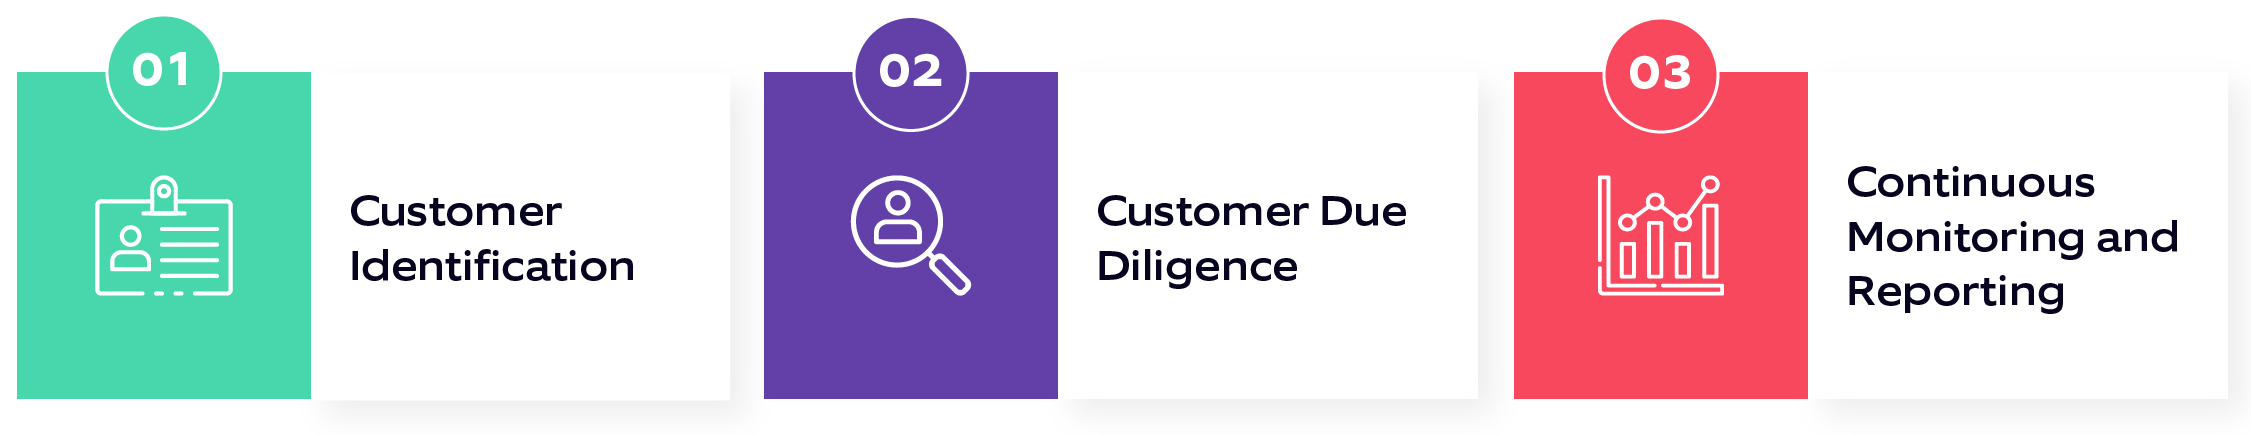 KYC process in banks: Customer identification, customer due diligence, continuous monitoring and reporting